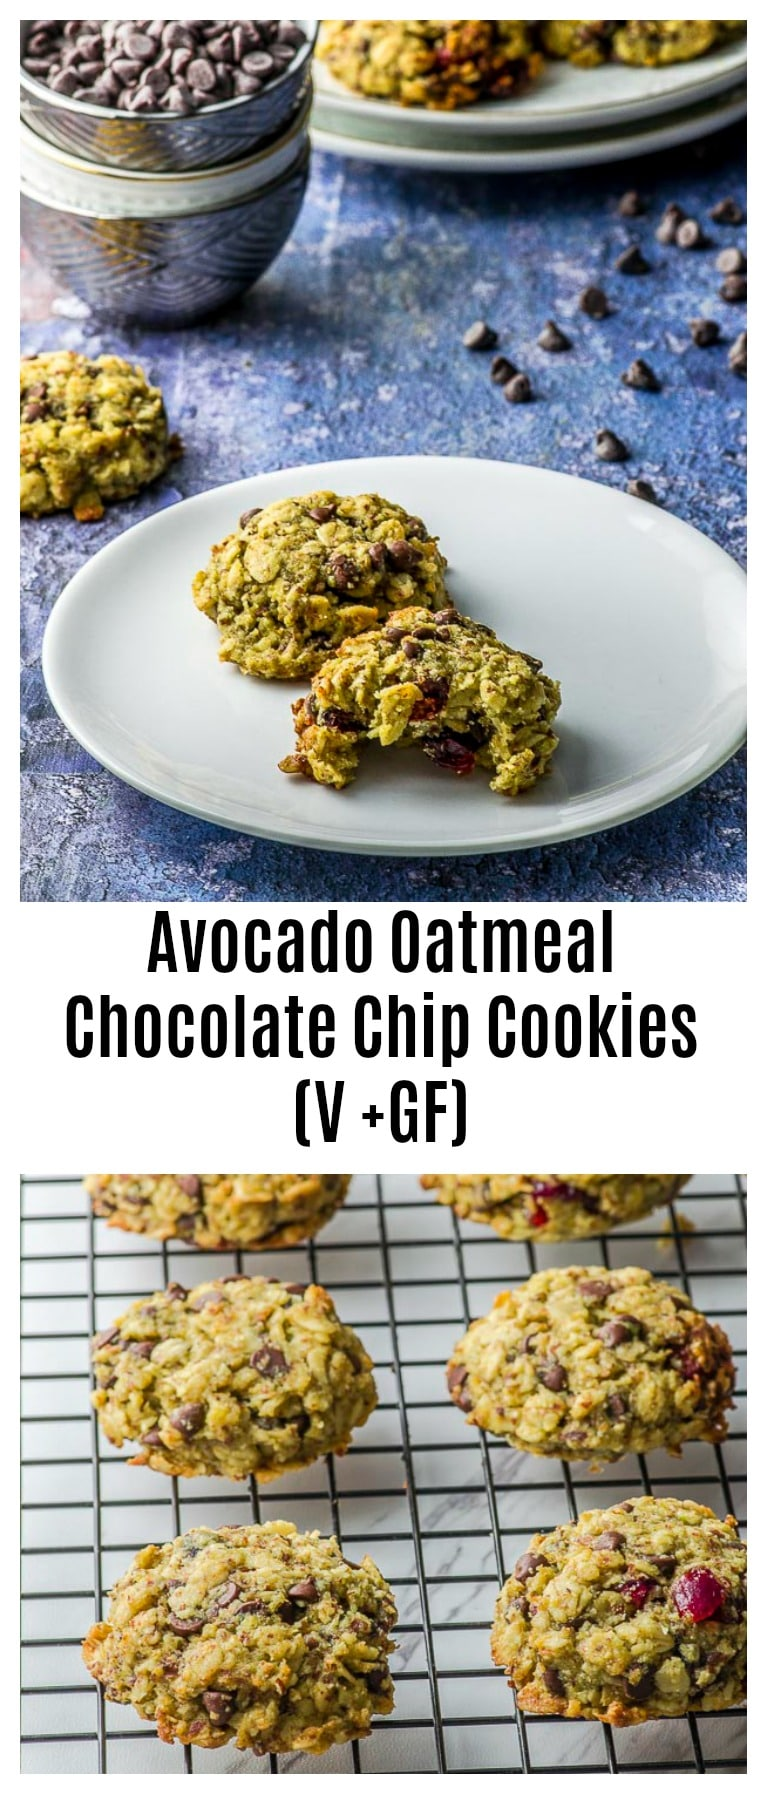 Soft, chewy and buttery, these vegan, gluten free Avocado Oatmeal Chocolate Chip Cookies are everything you crave in a cookie, and we're sneaking in some healthy fats in them! As easy as 2 bowls and 30 minutes from start to finish.#cookies #Vegan #GlutenFree #breakfast #healthy #avocado